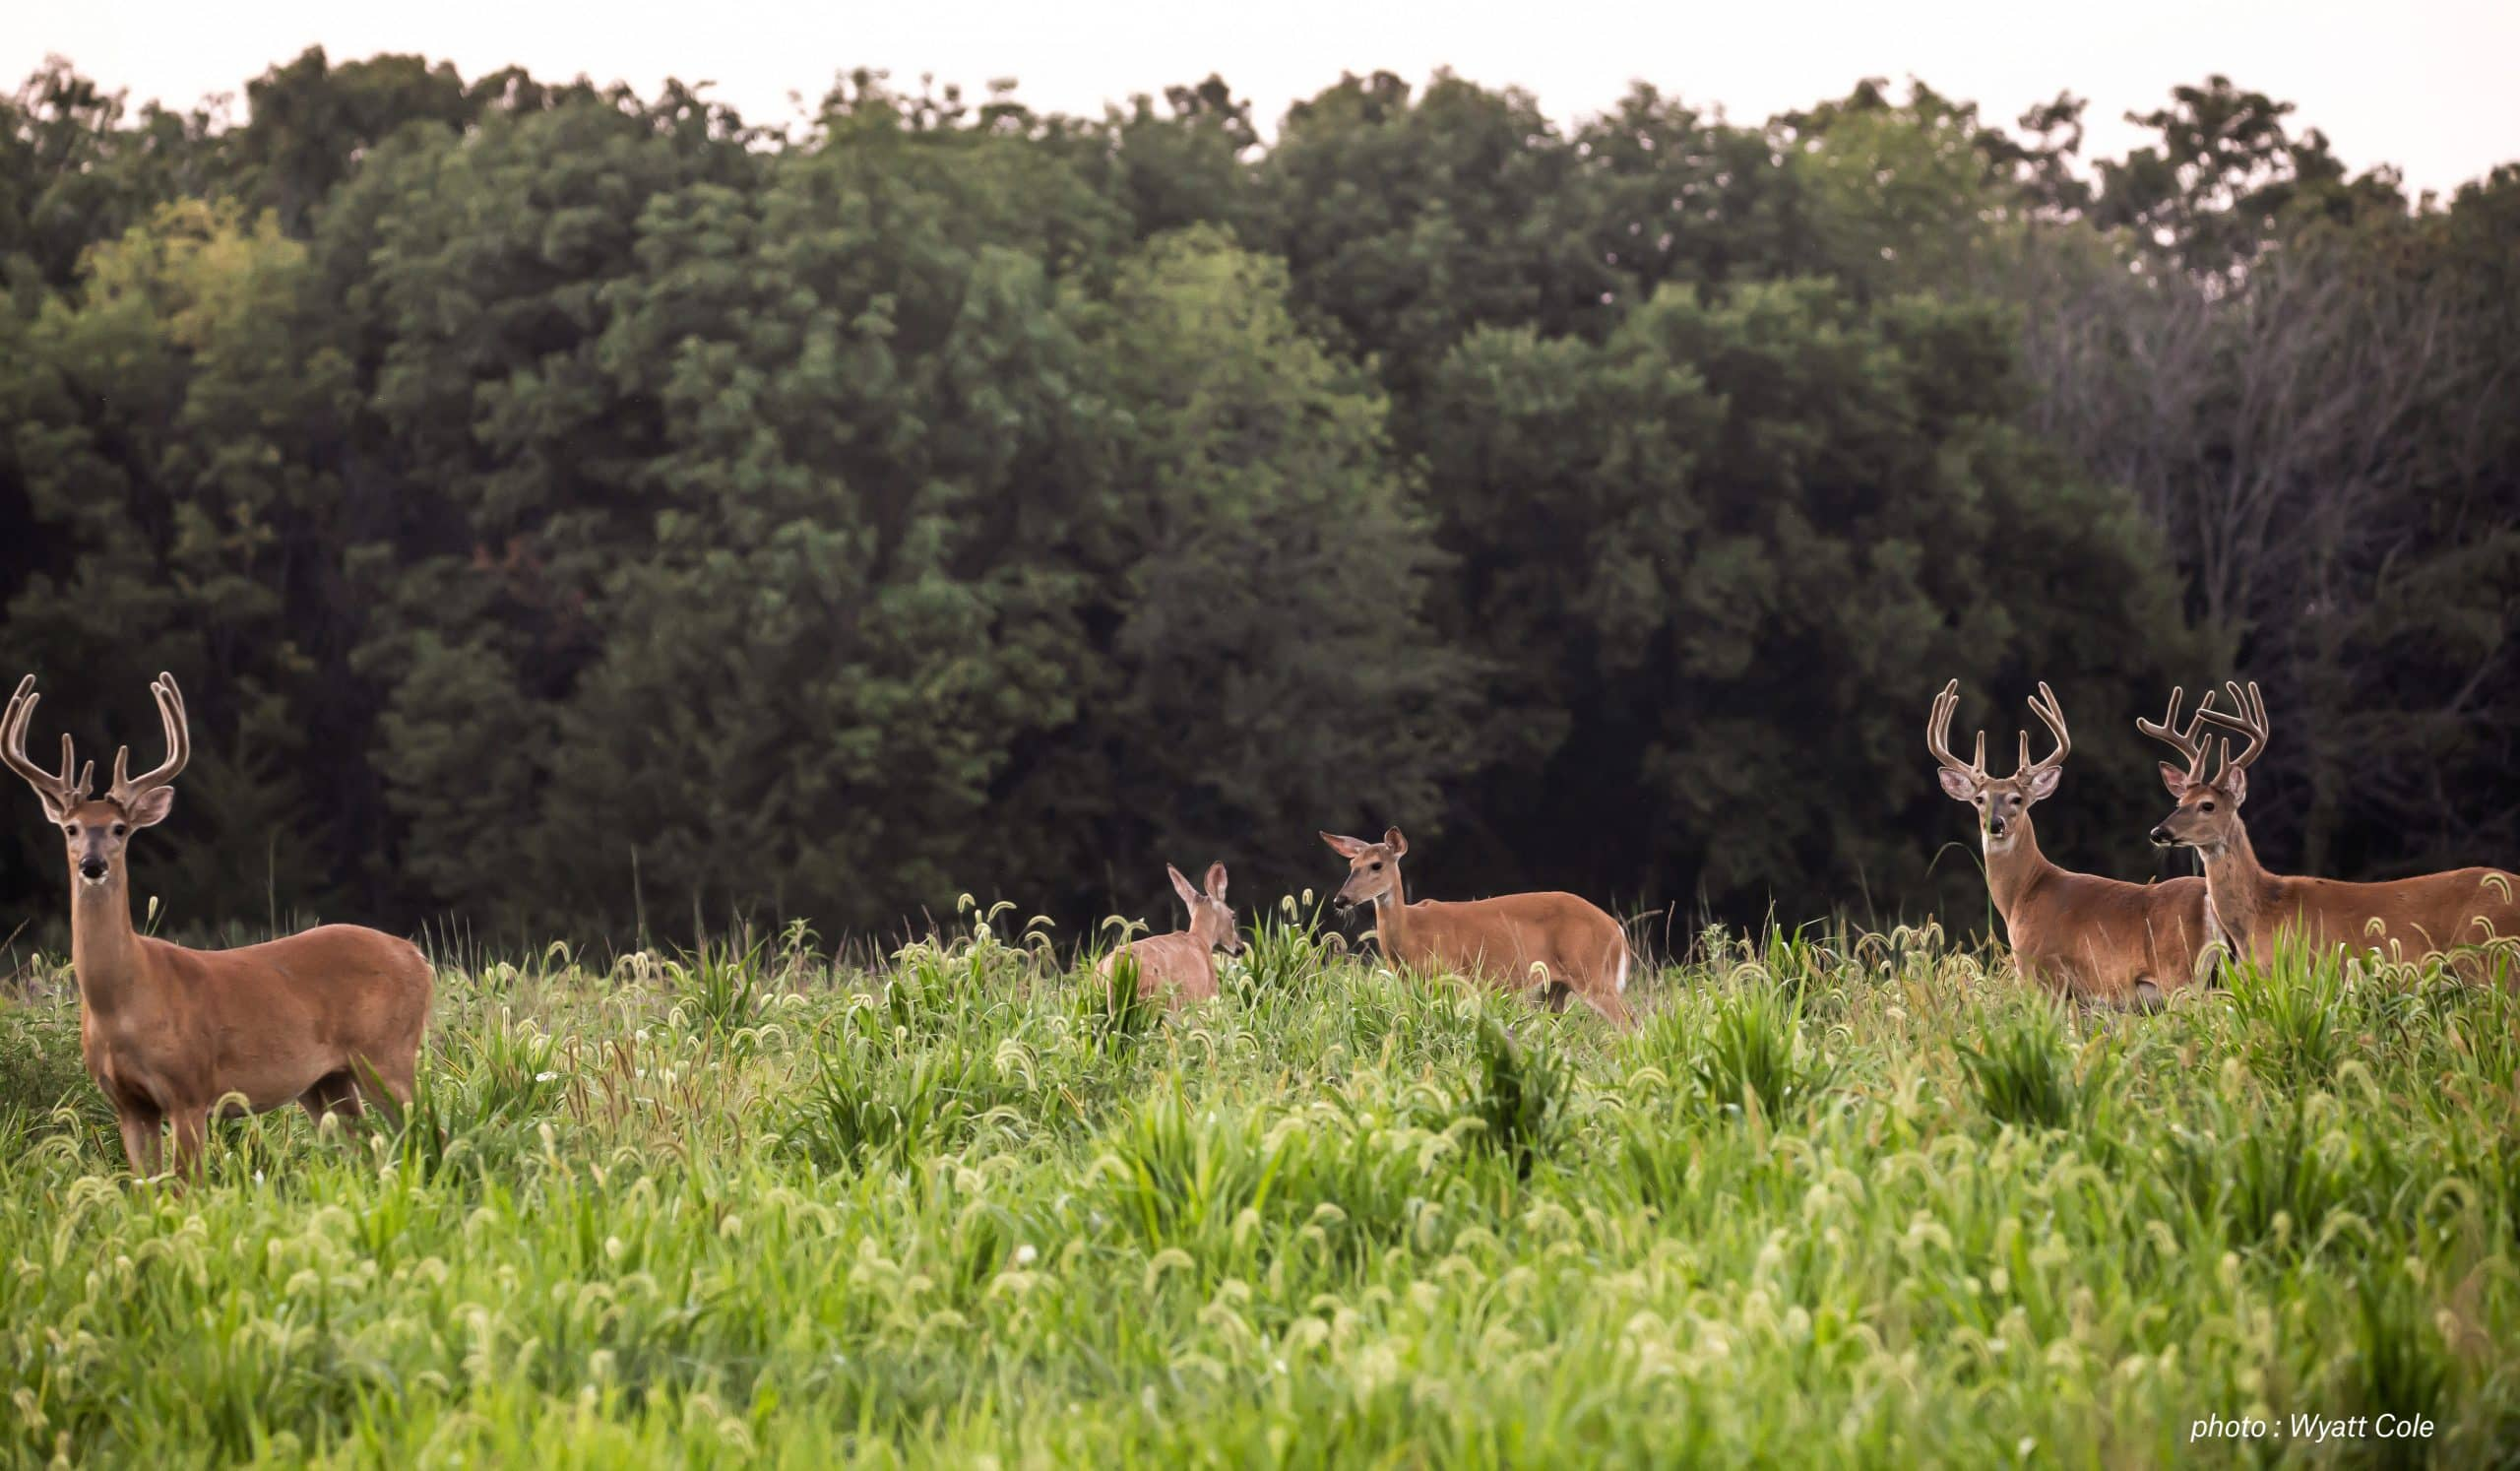 Deer in a field.